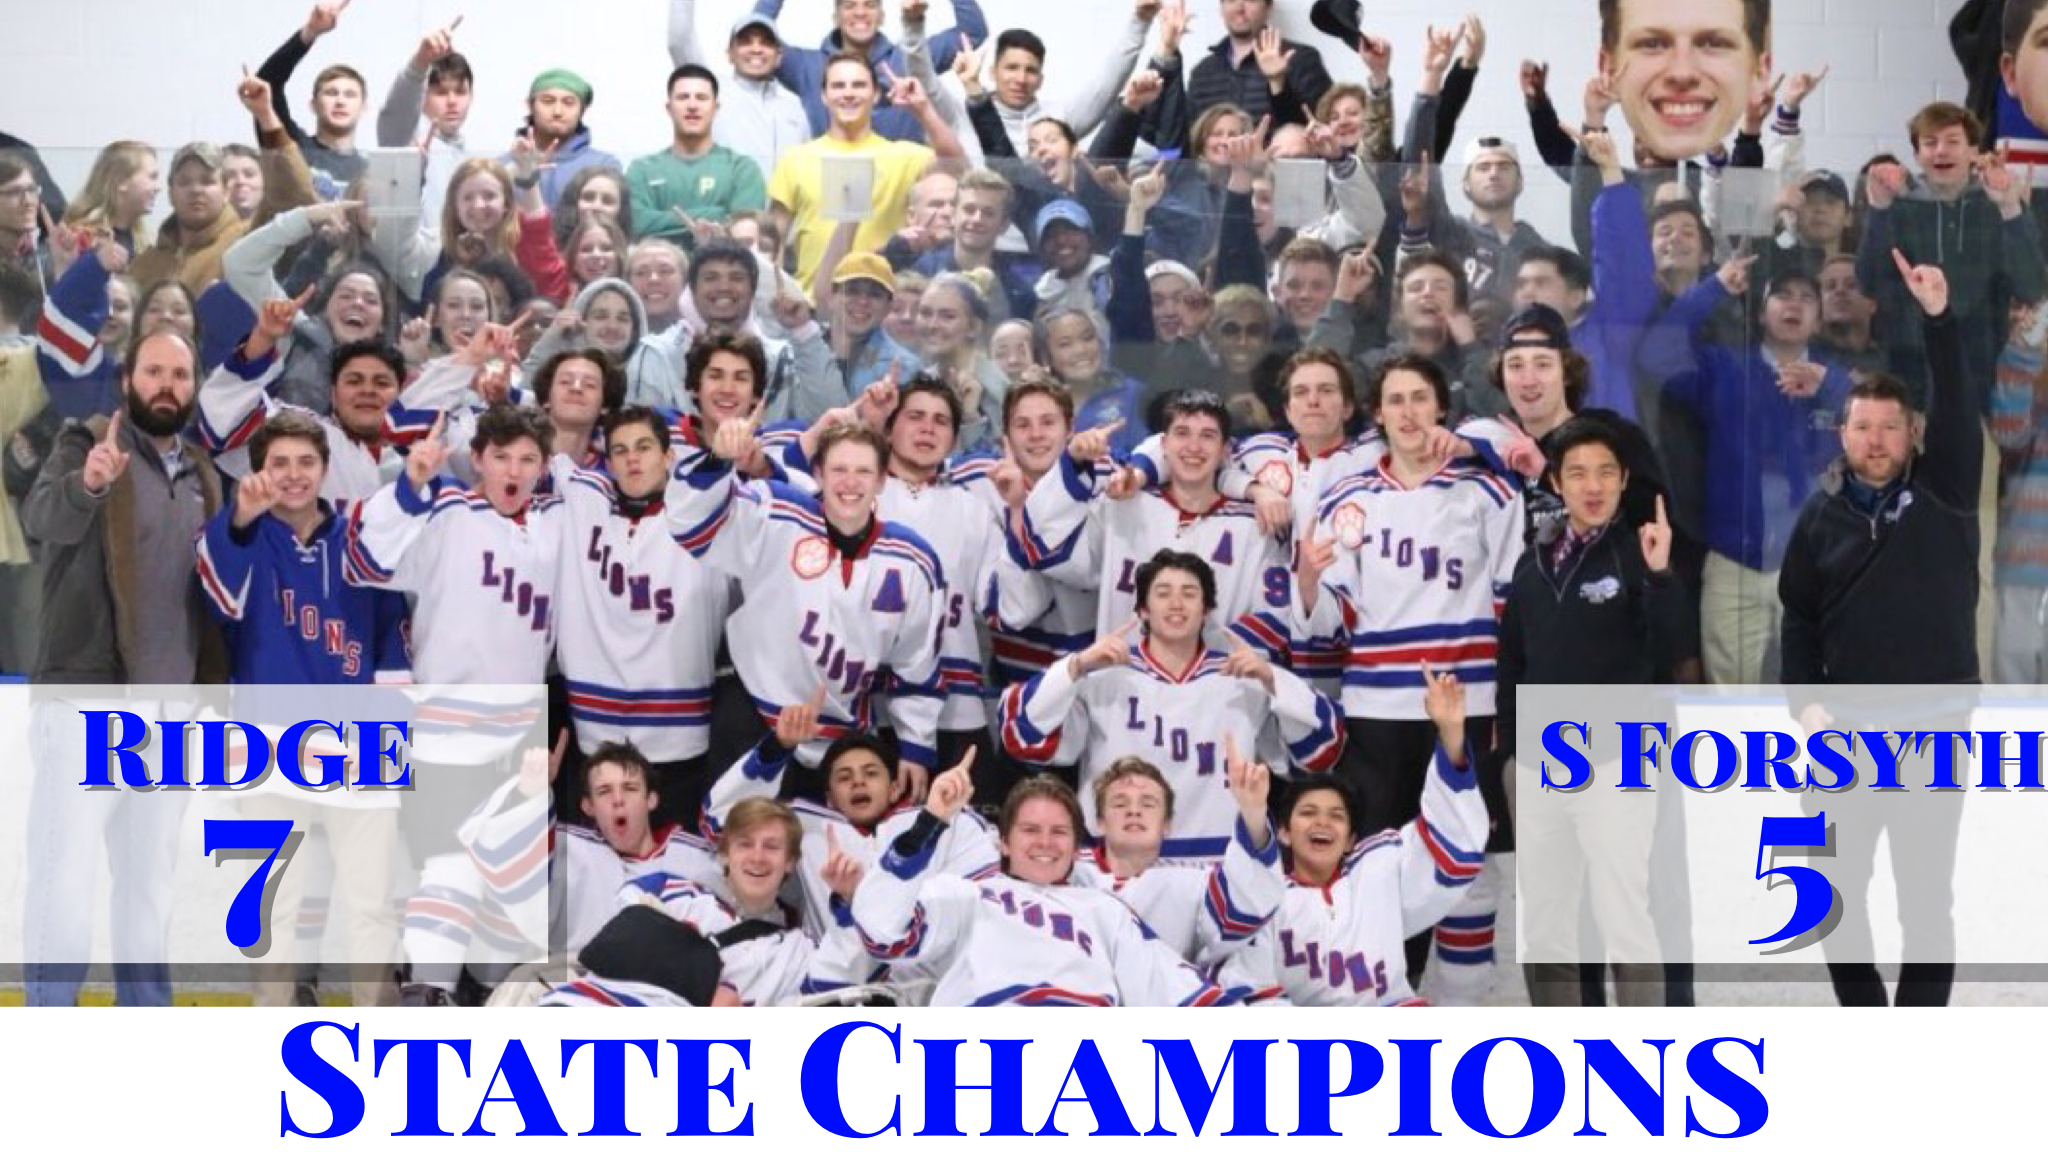 Peachtree Ridge Hockey – STATE CHAMPIONS